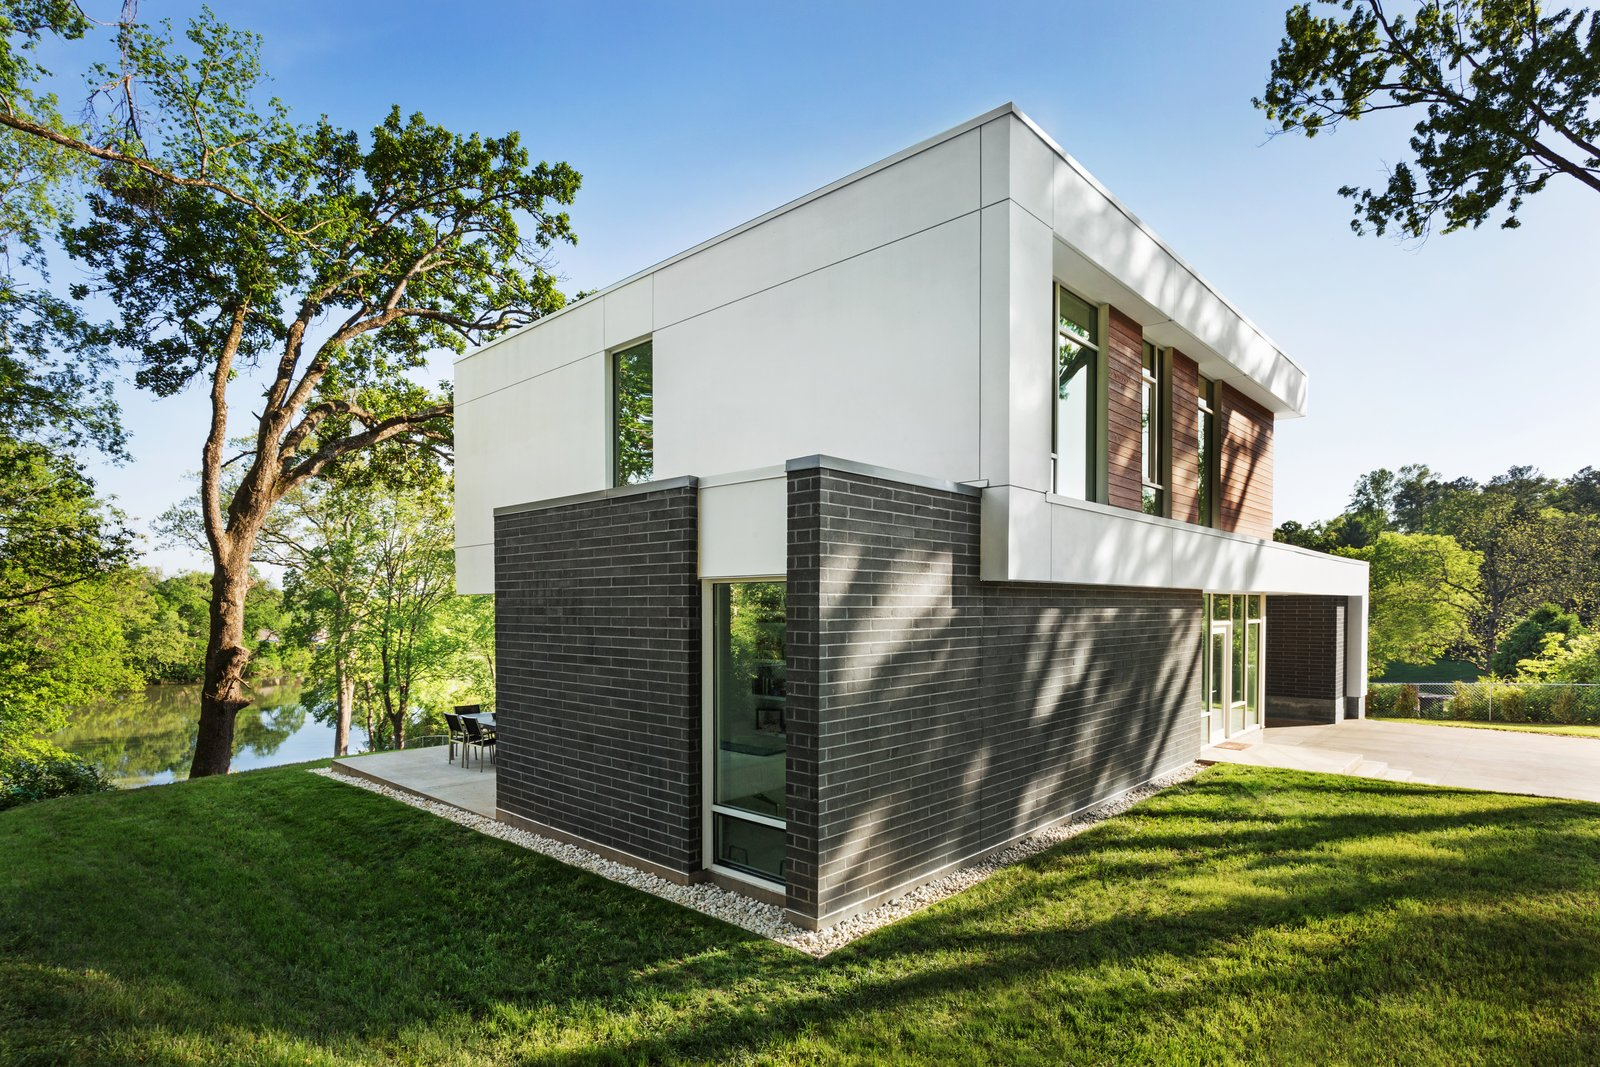 The home protects the patio from afternoon heat and sun  Boetger Residence by Chad Boetger